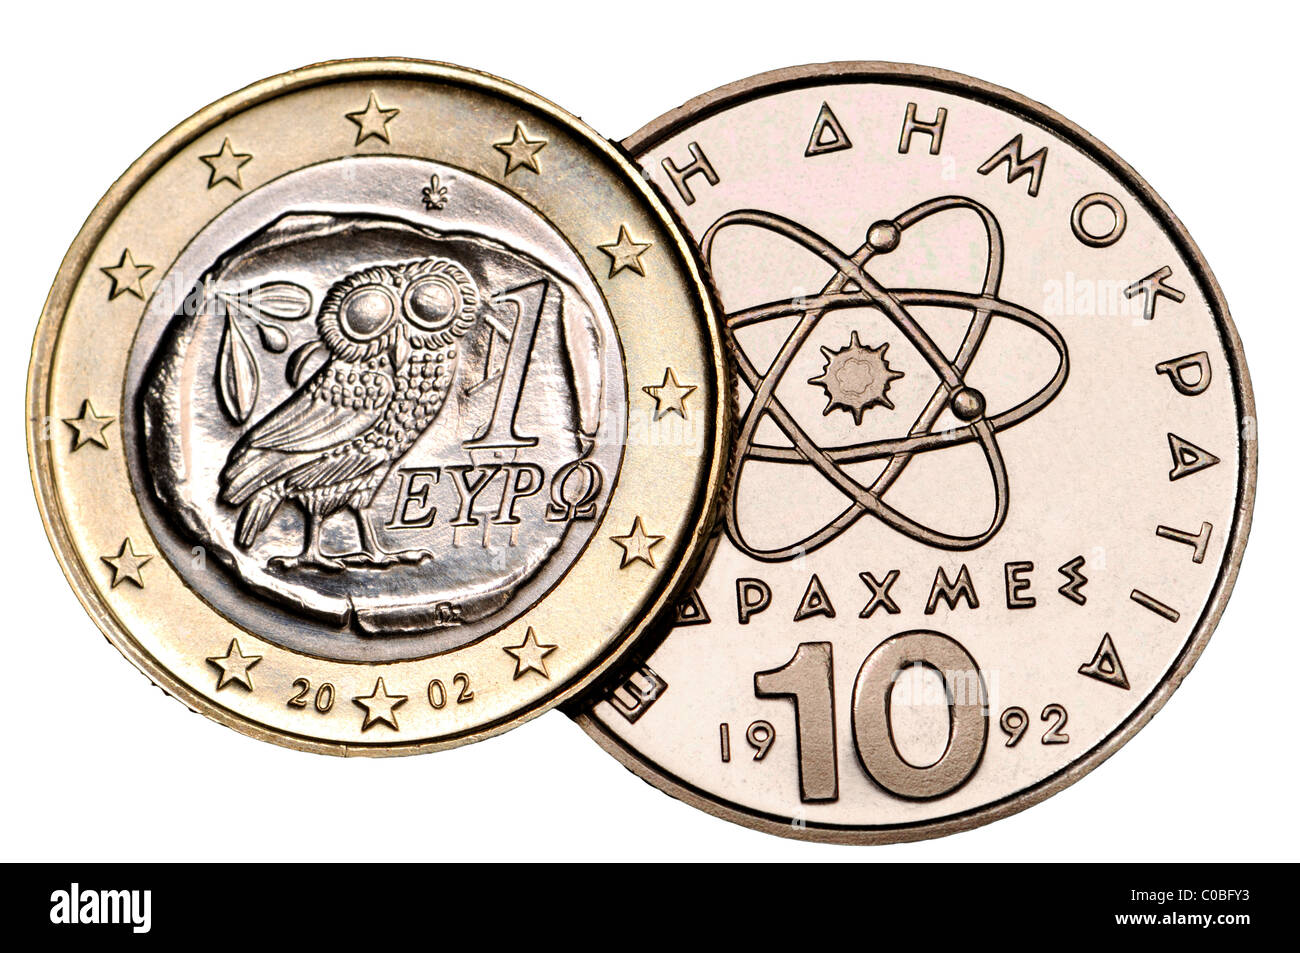 Greek 1 Euro coin from 2002 and 10 Drachma coin from 1992 Stock Photo